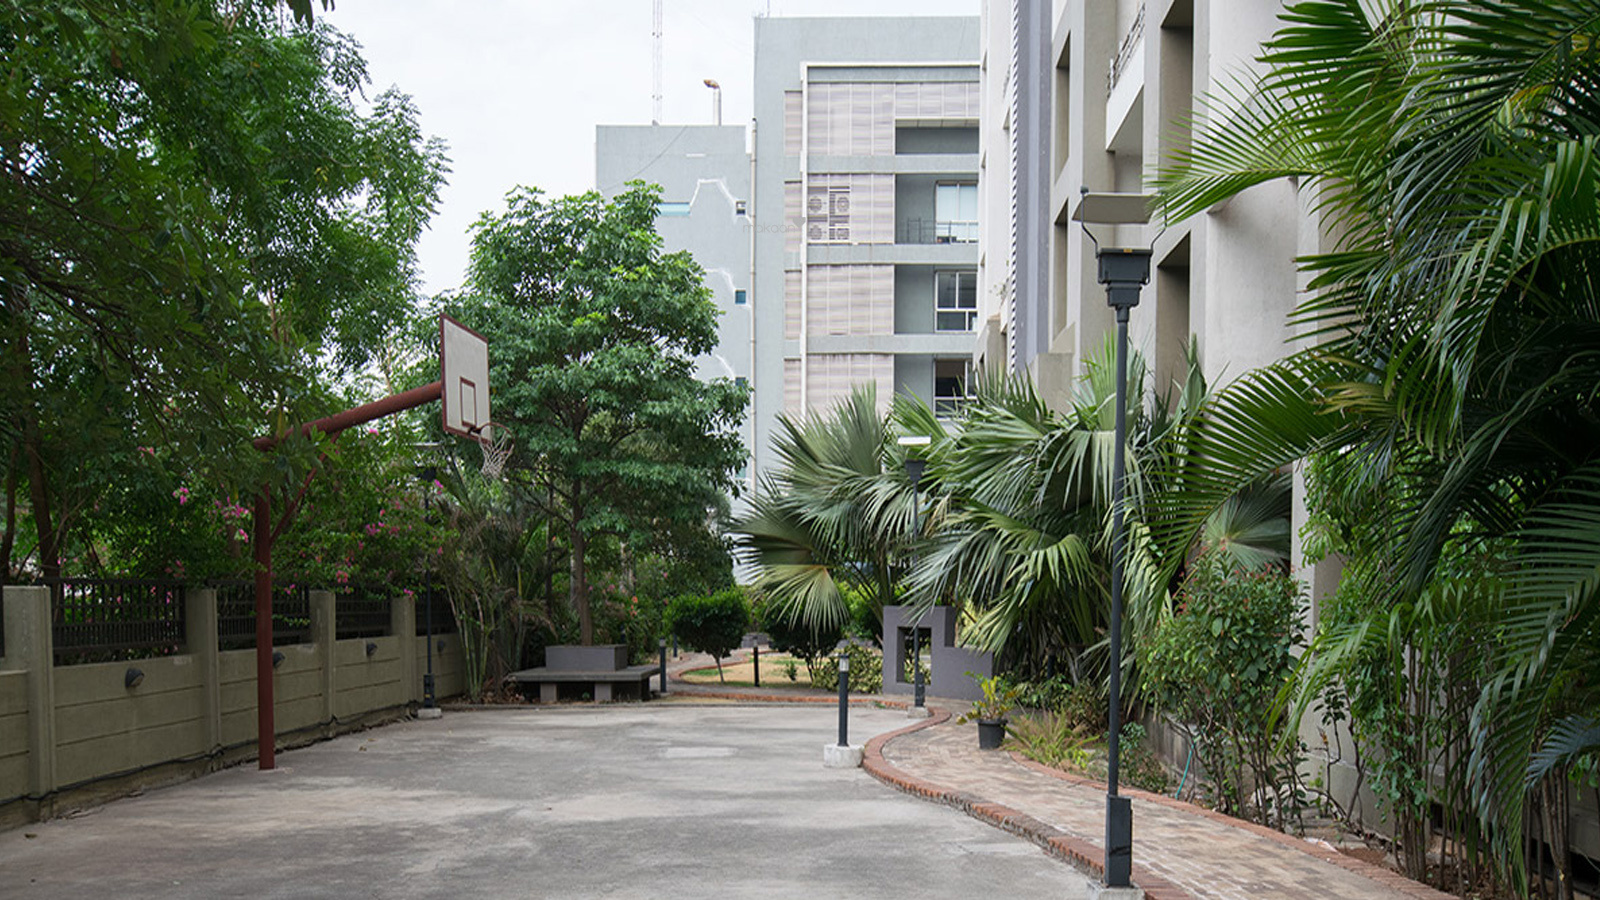 4000 sq ft 4BHK 4BHK+5T (4,000 sq ft) + Servant Room Property By National Properties In Diva 1, Hadapsar